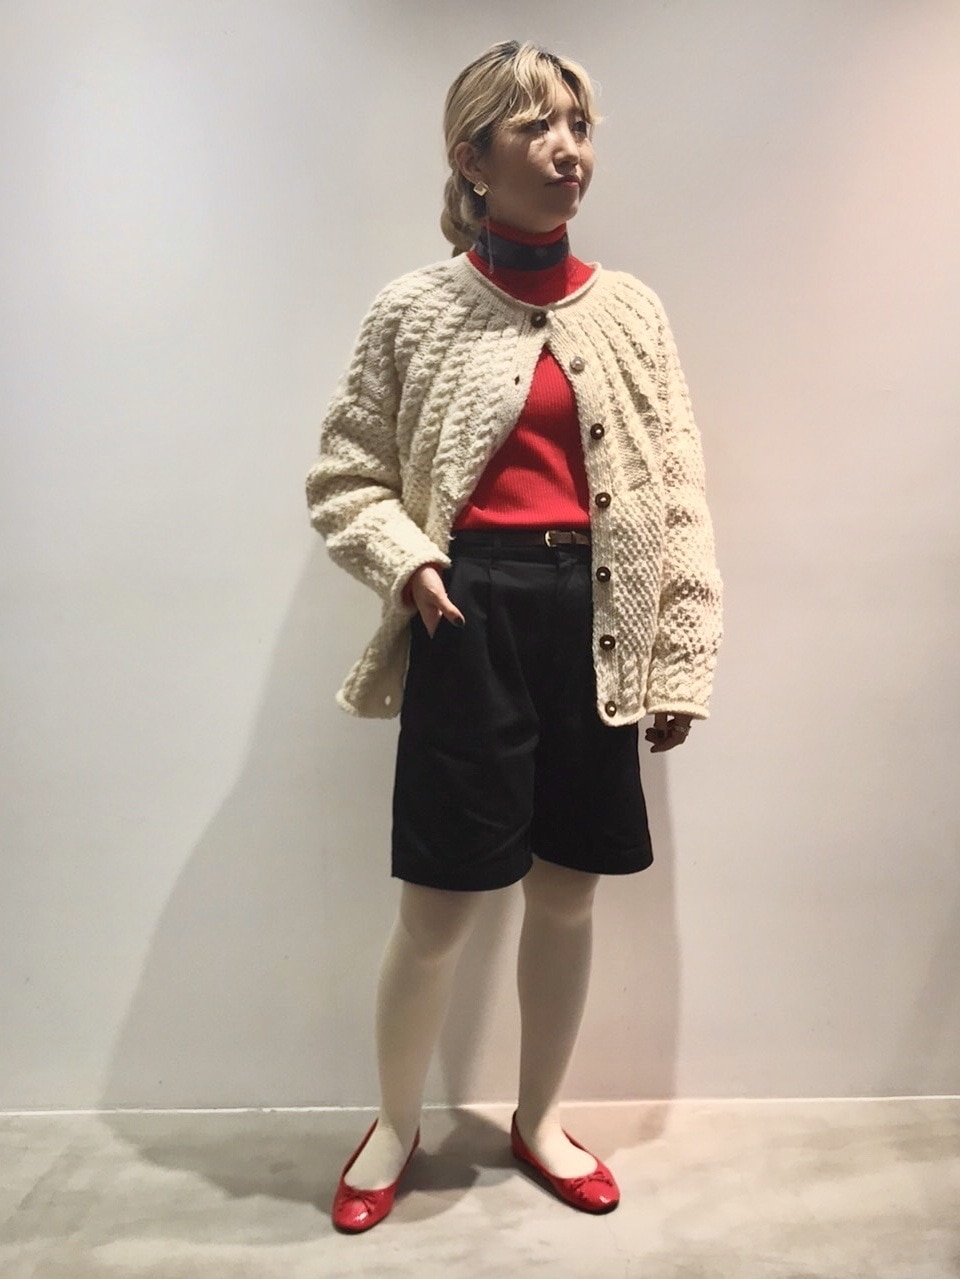 Dot and Stripes CHILD WOMAN ラフォーレ原宿 身長:160cm 2020.10.26